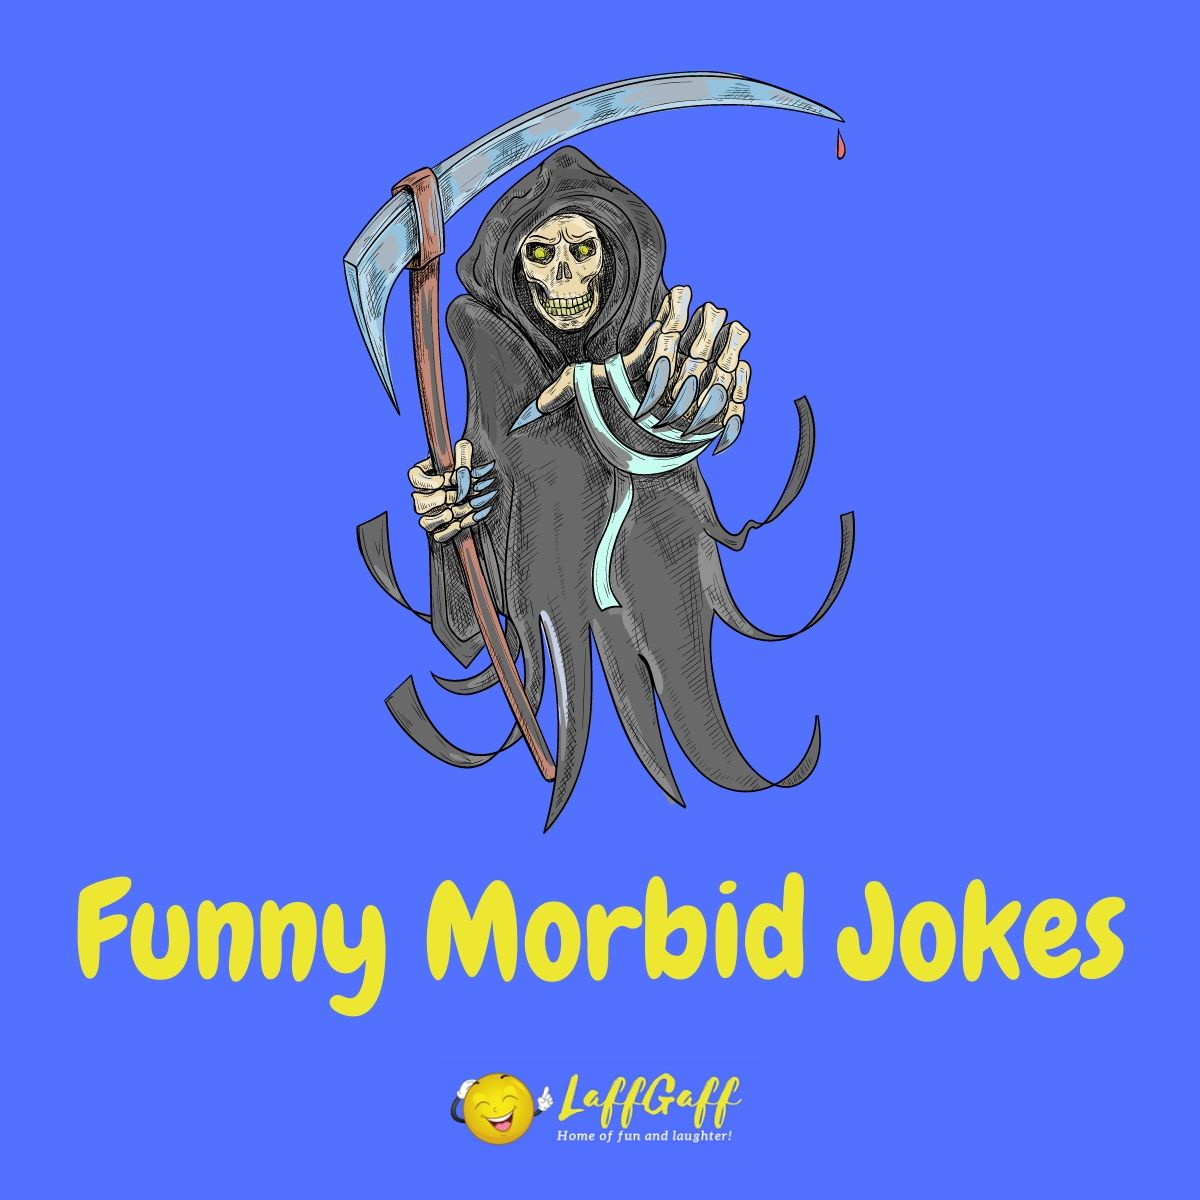 Featured image for a page of darkly morbid jokes and humor.